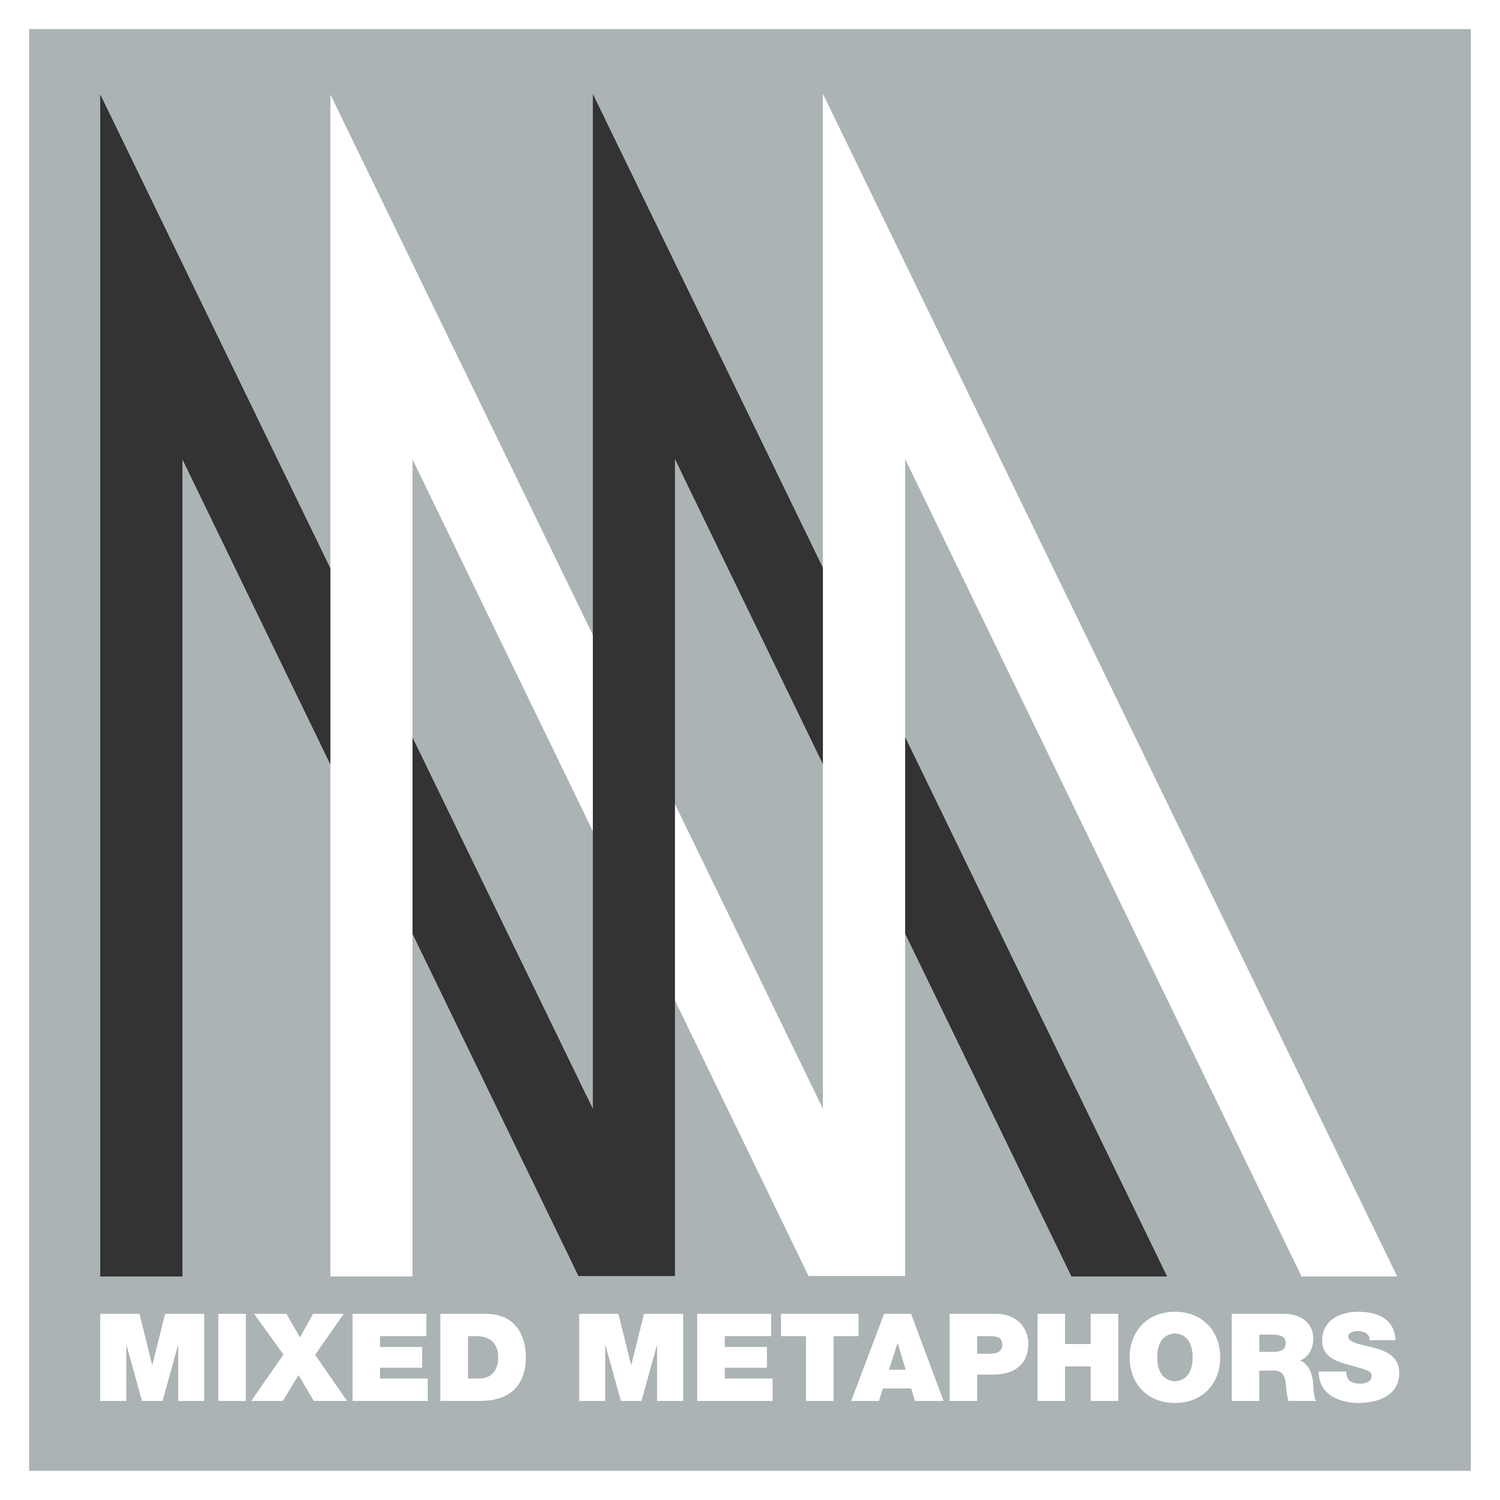 Mixed Metaphors Design